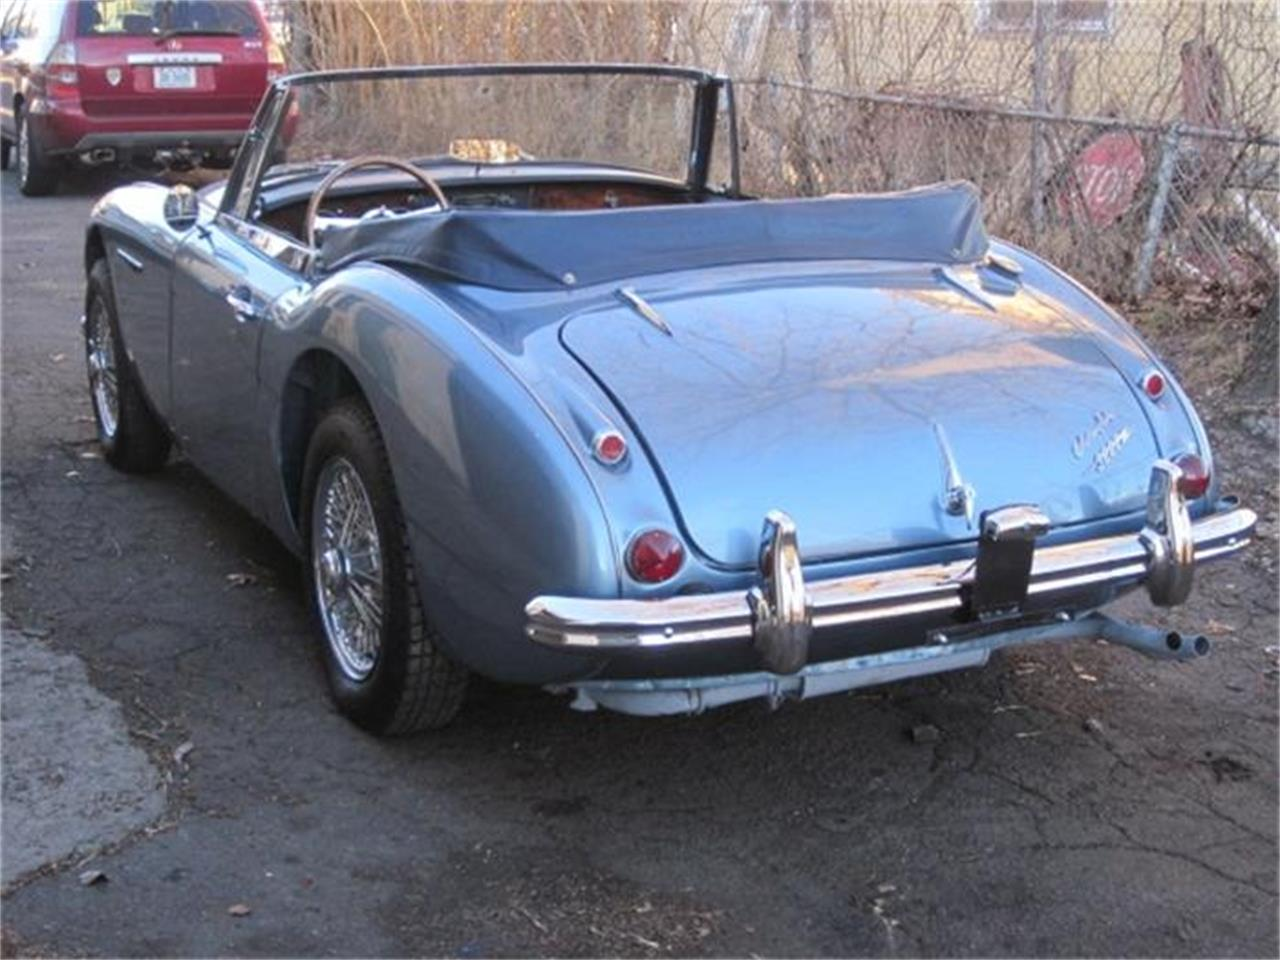 Large Picture of '65 Austin-Healey 3000 Mark III located in Stratford Connecticut - $69,500.00 - GAT2